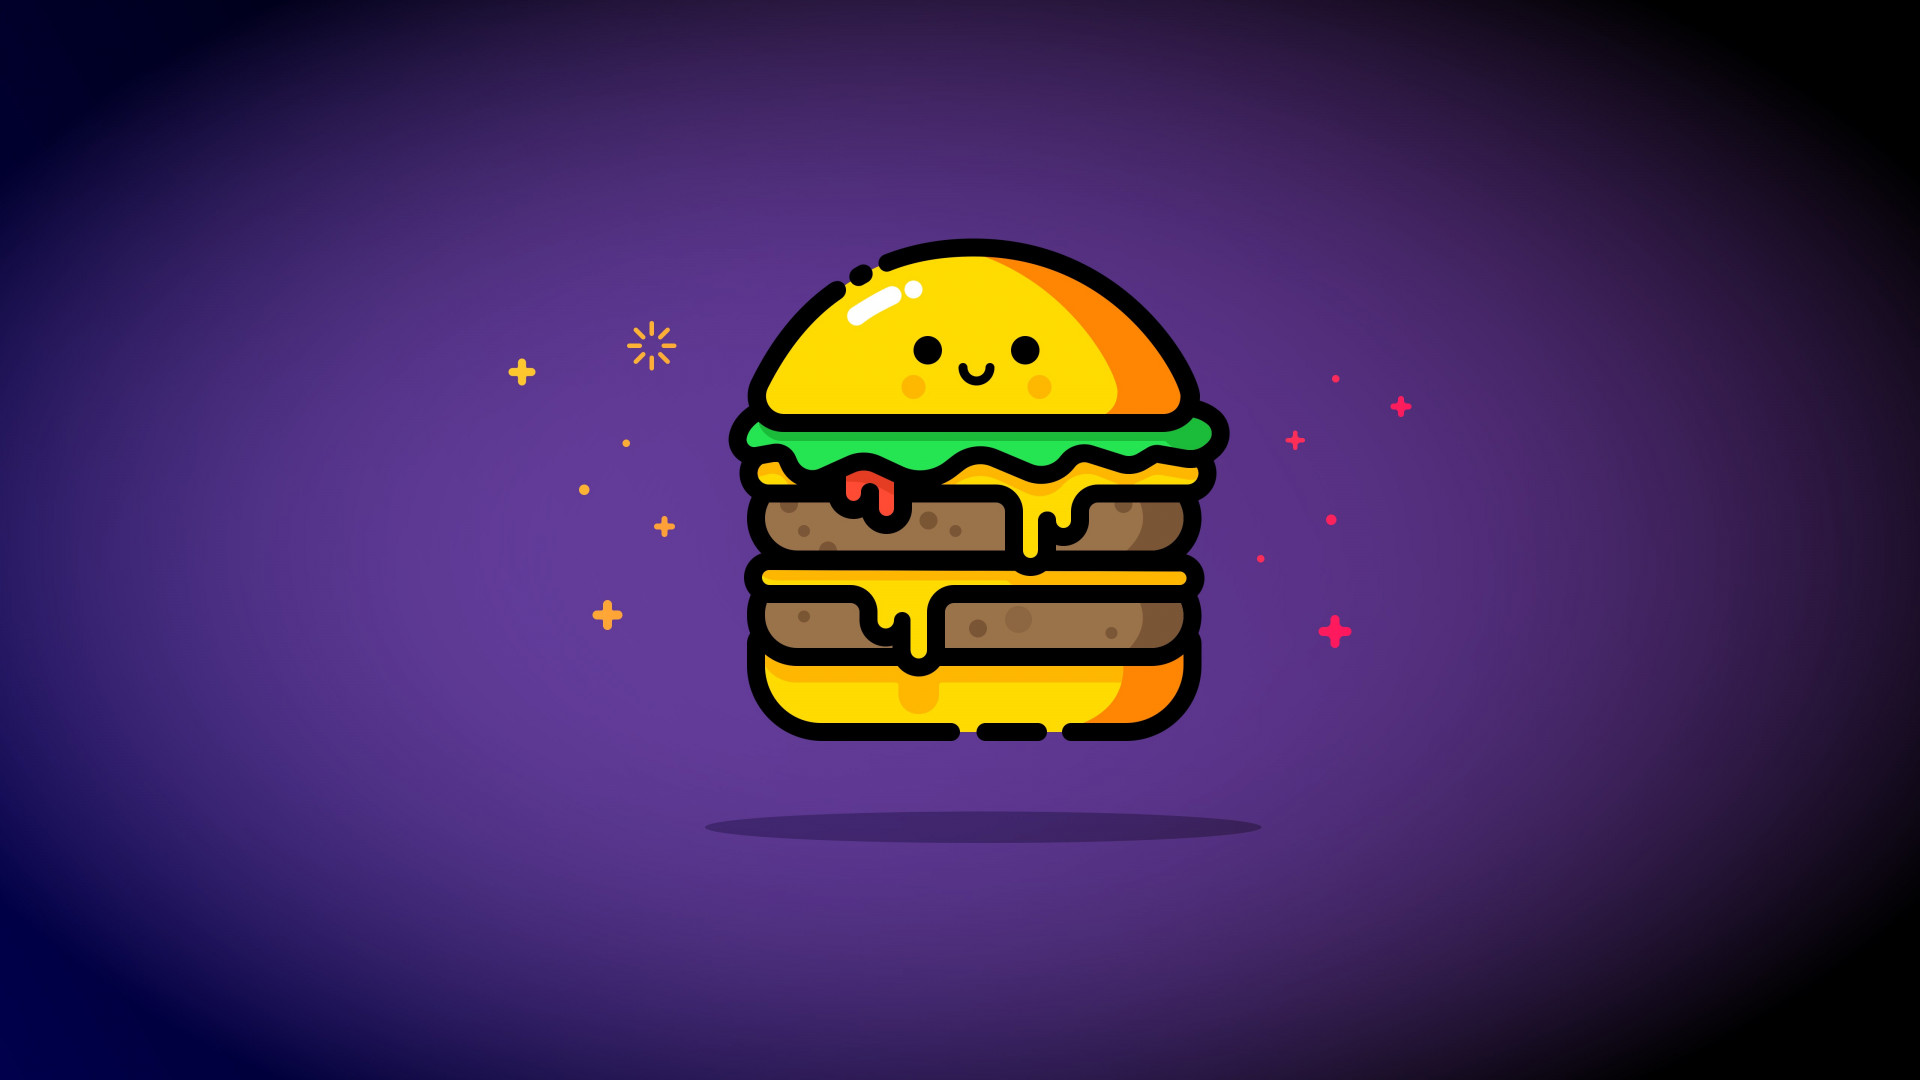 Download Wallpaper Double Cheese 1920x1080